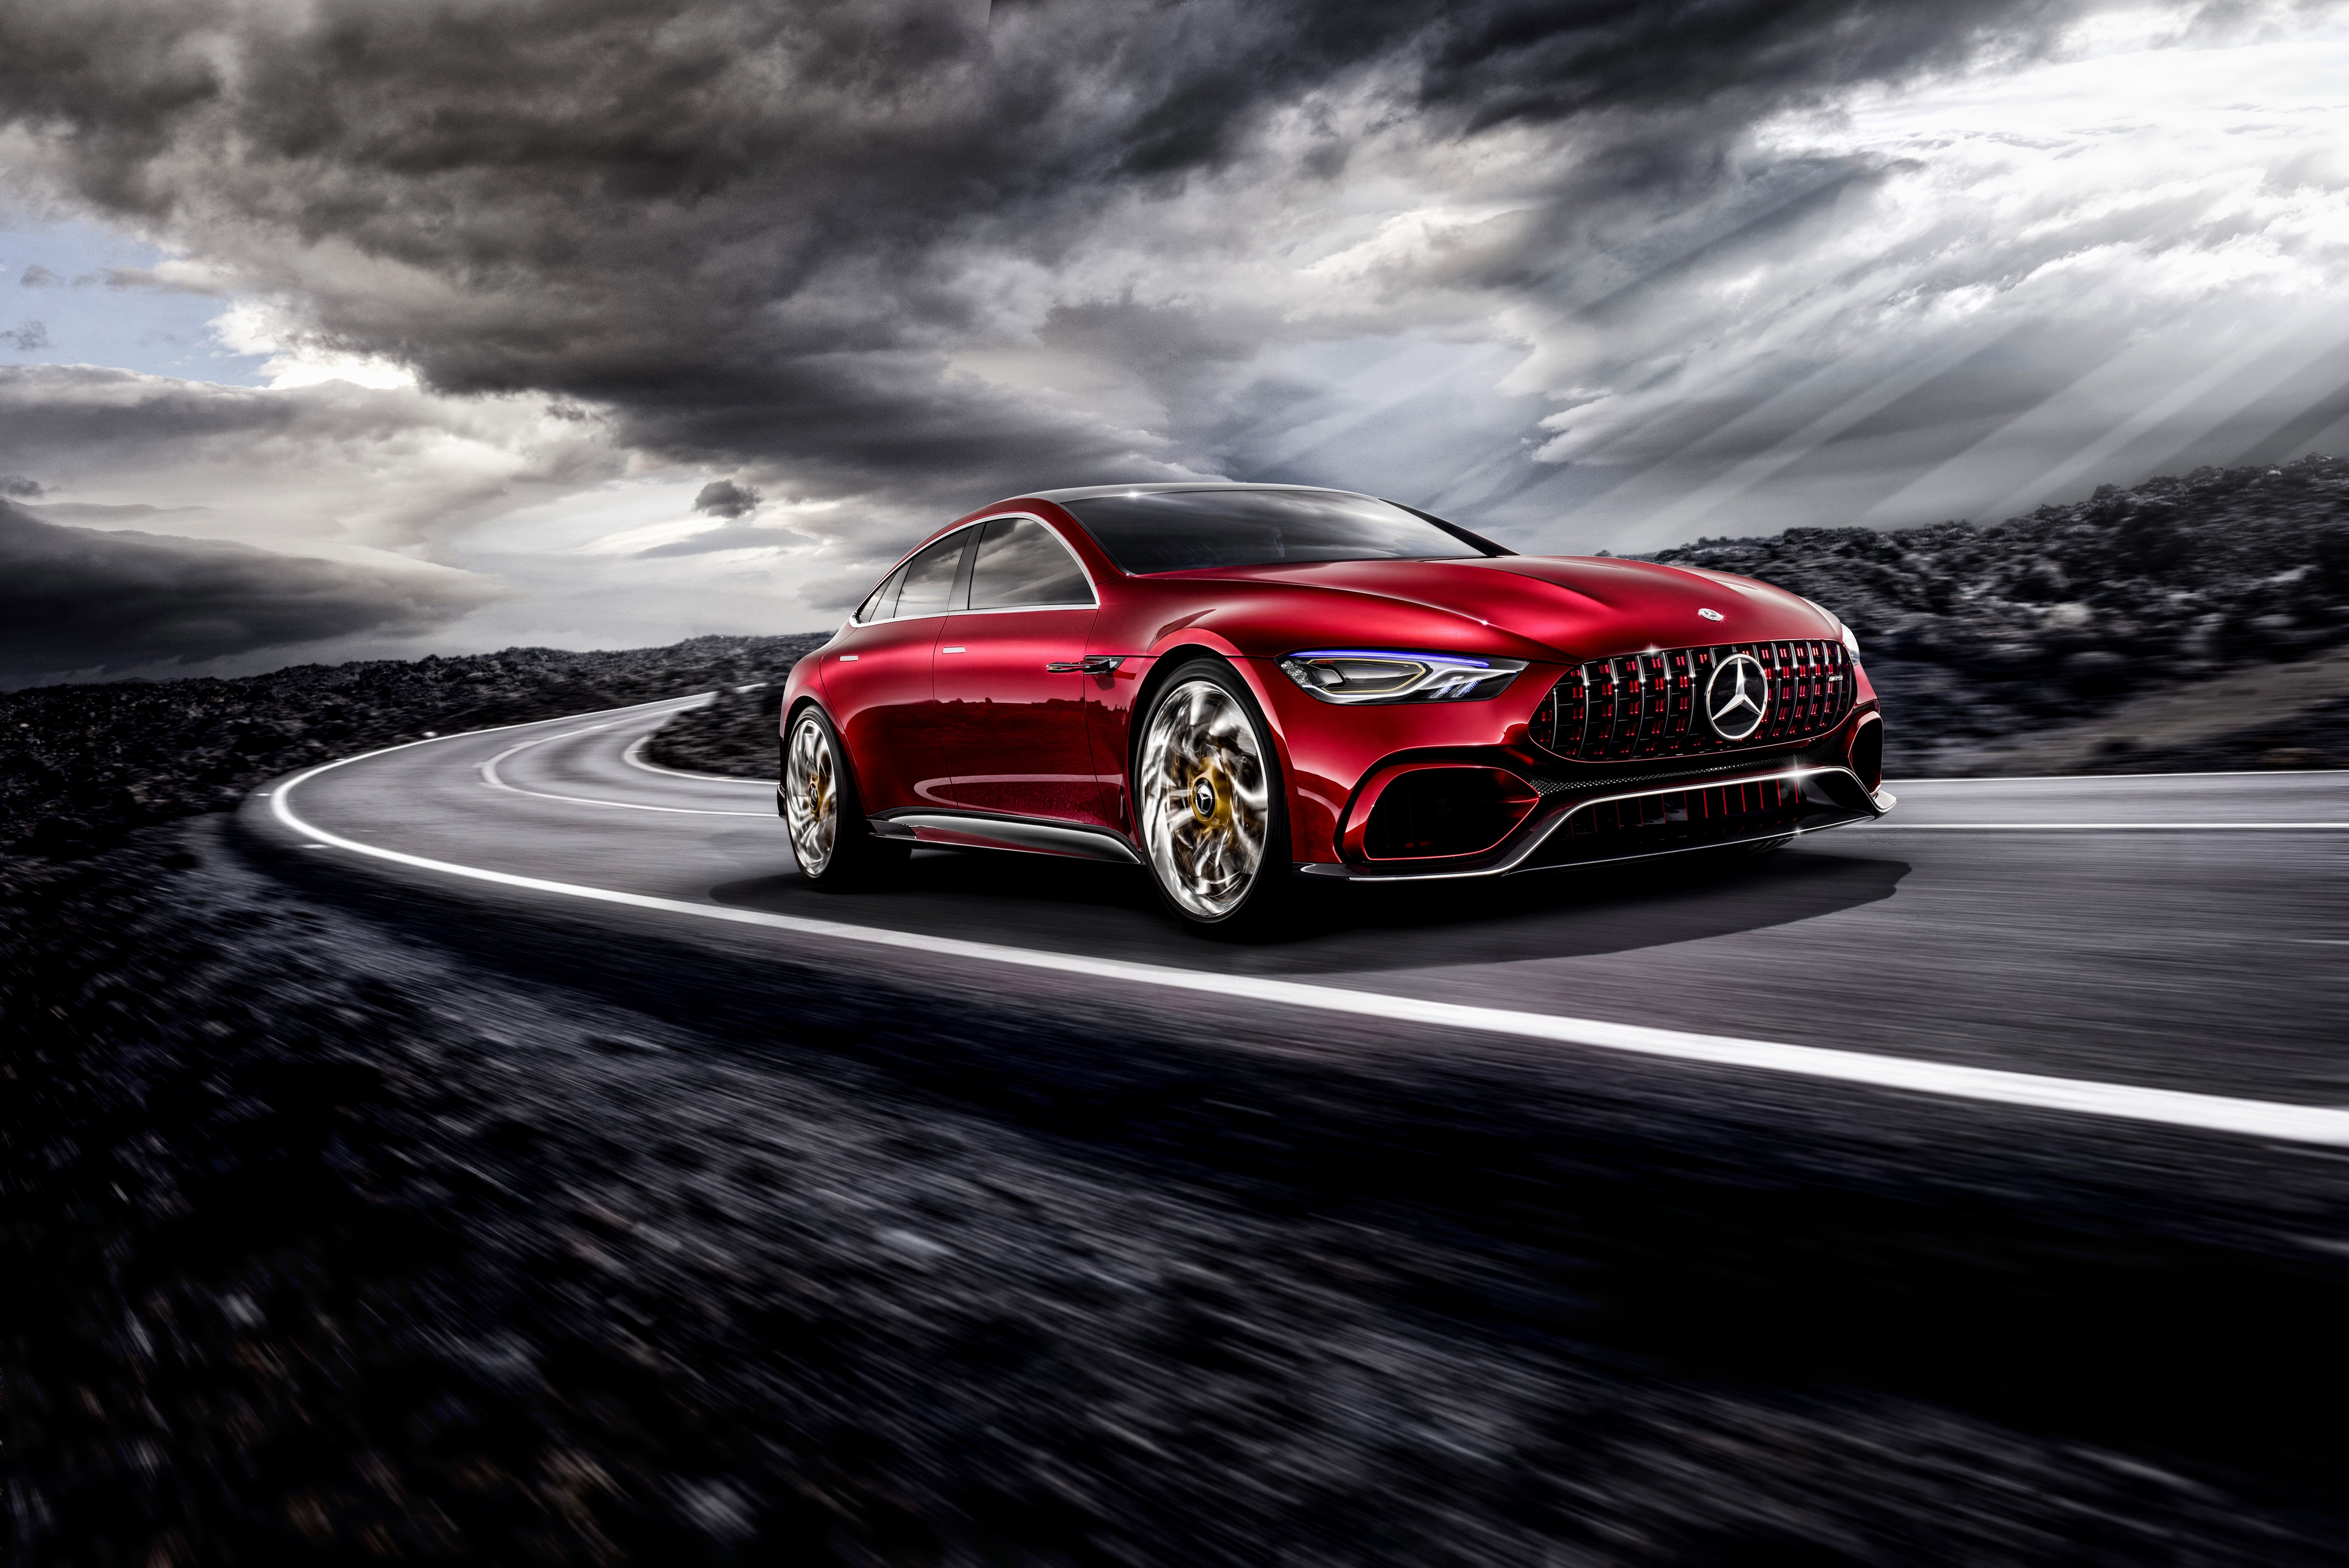 2017 Mercedes AMG GT 4k, HD Cars, 4k Wallpapers, Images ...